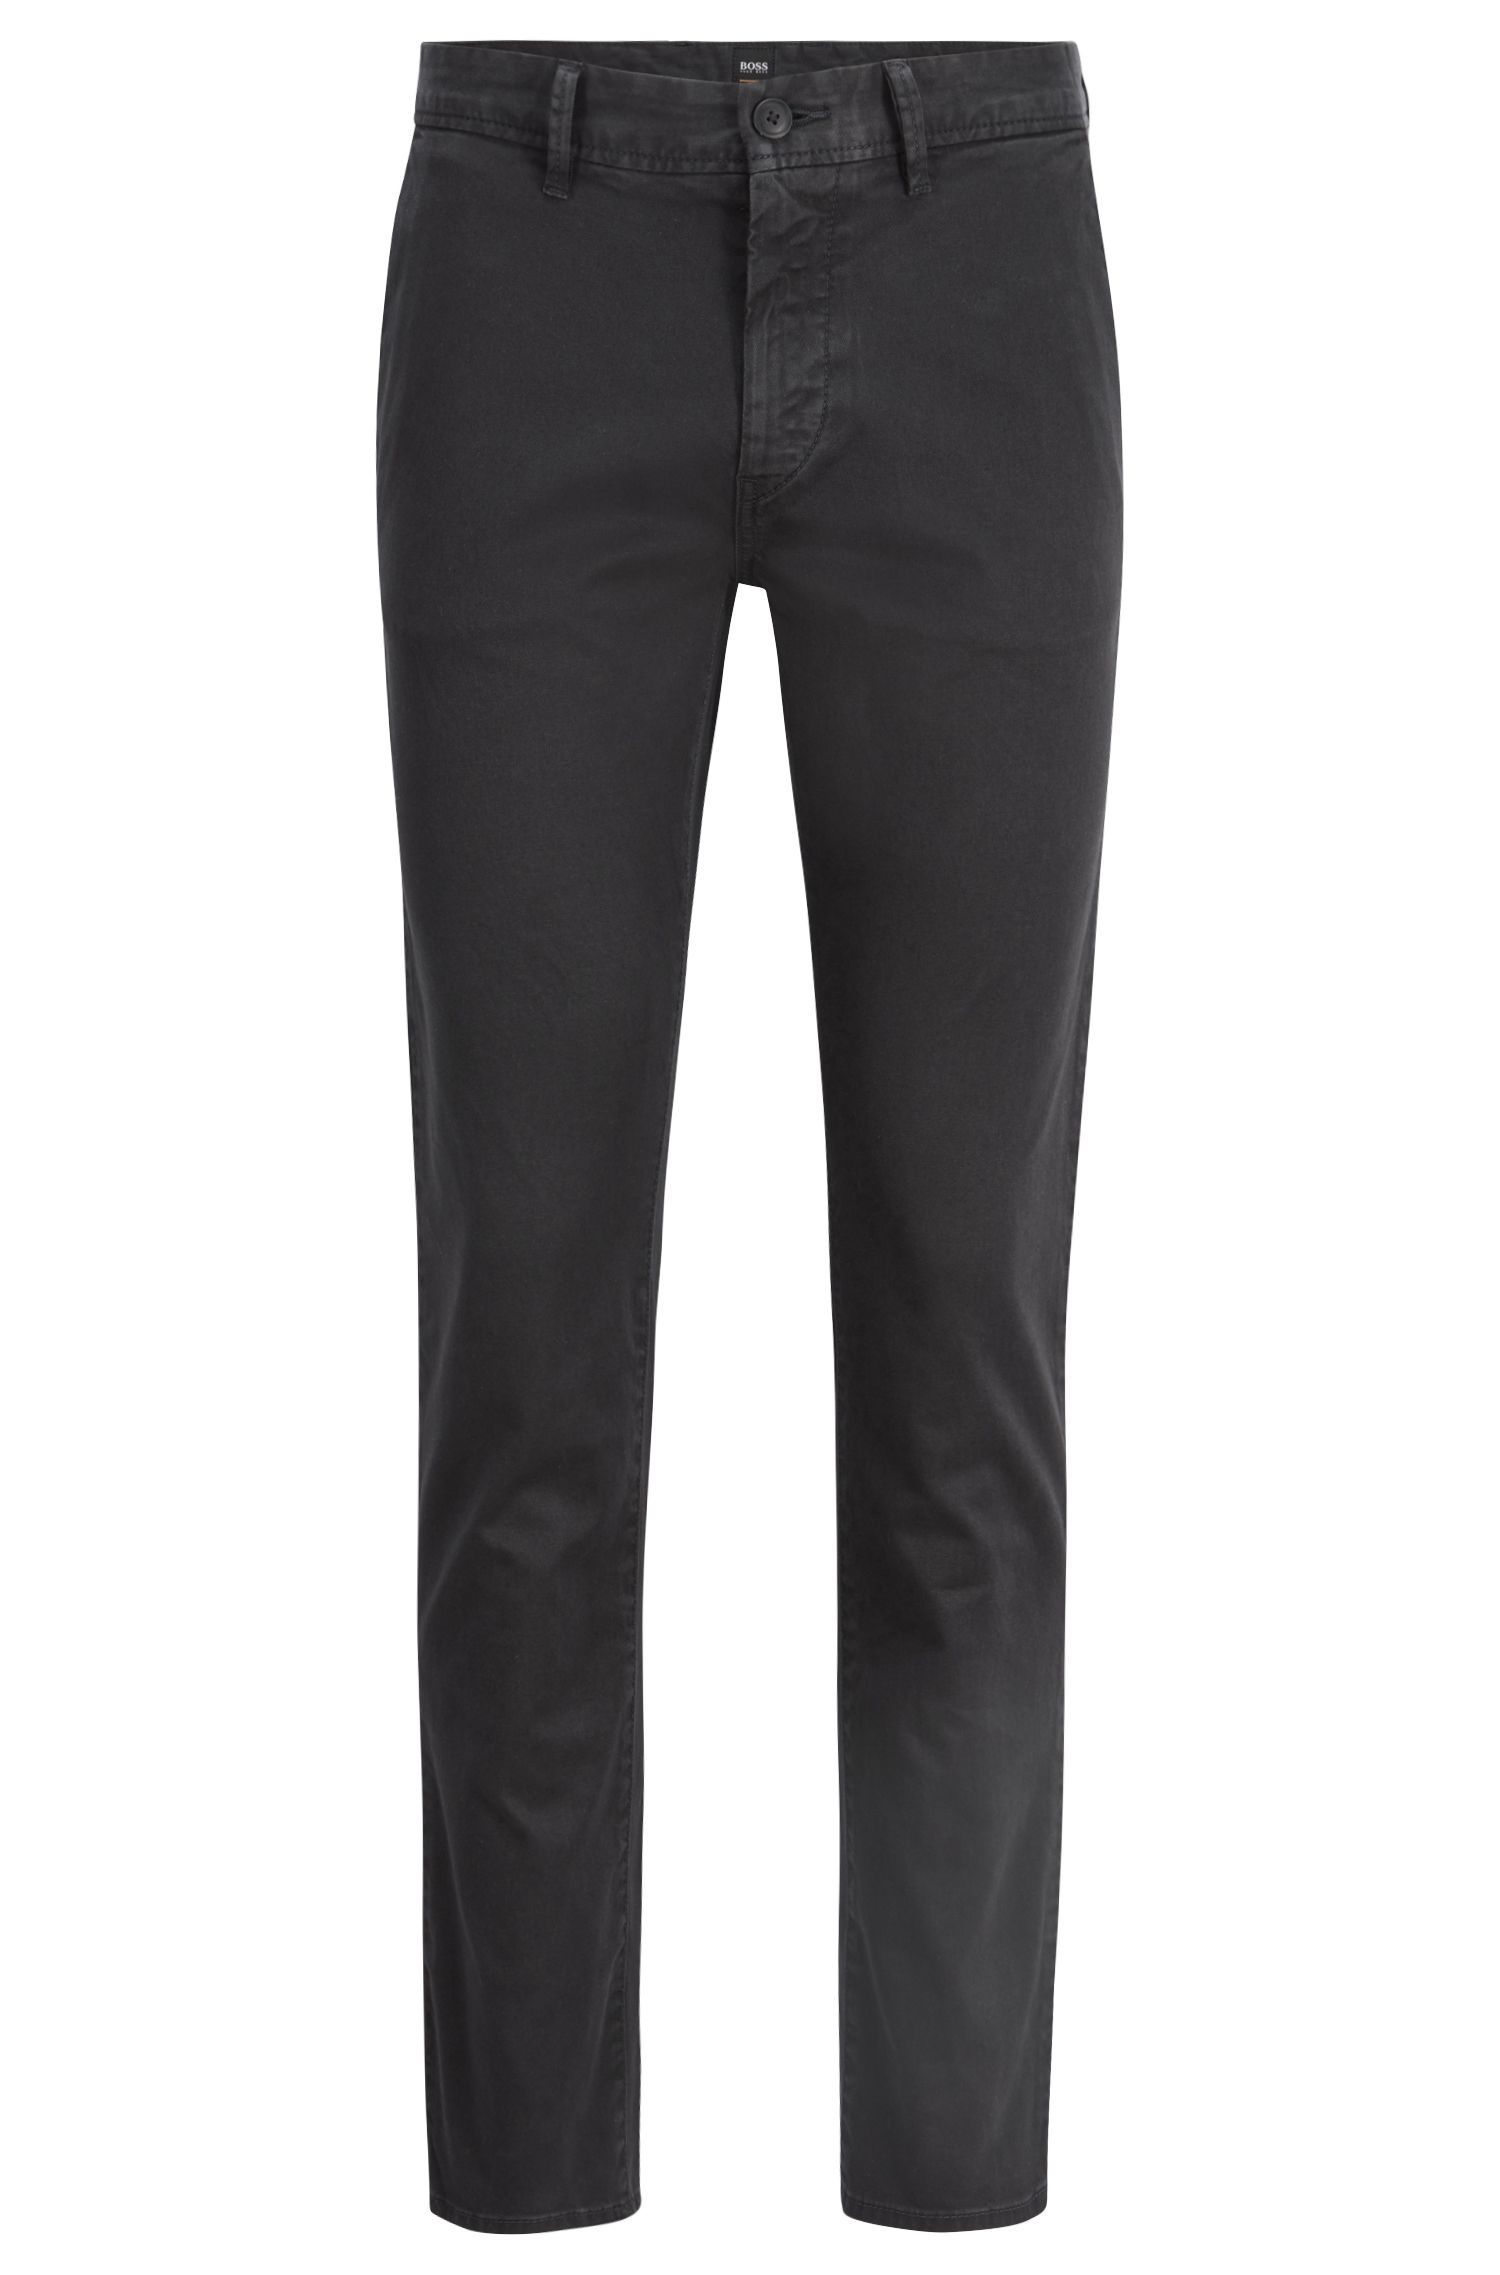 Chino Slim Fit en twill de coton stretch à la teinture pigmentaire, Noir